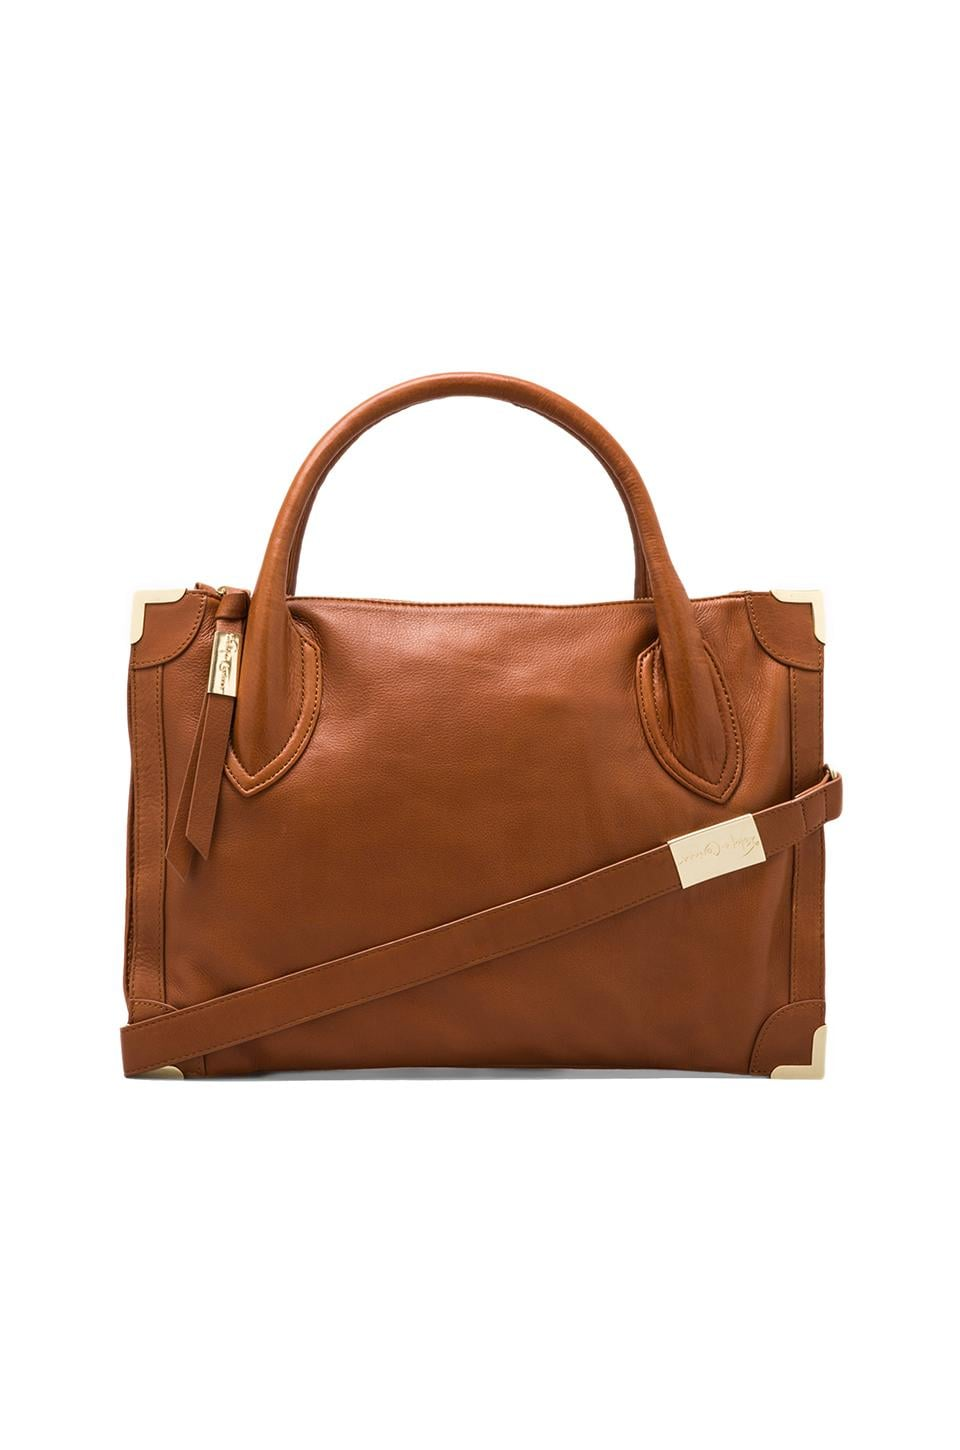 Foley + Corinna Framed Satchel in Whiskey